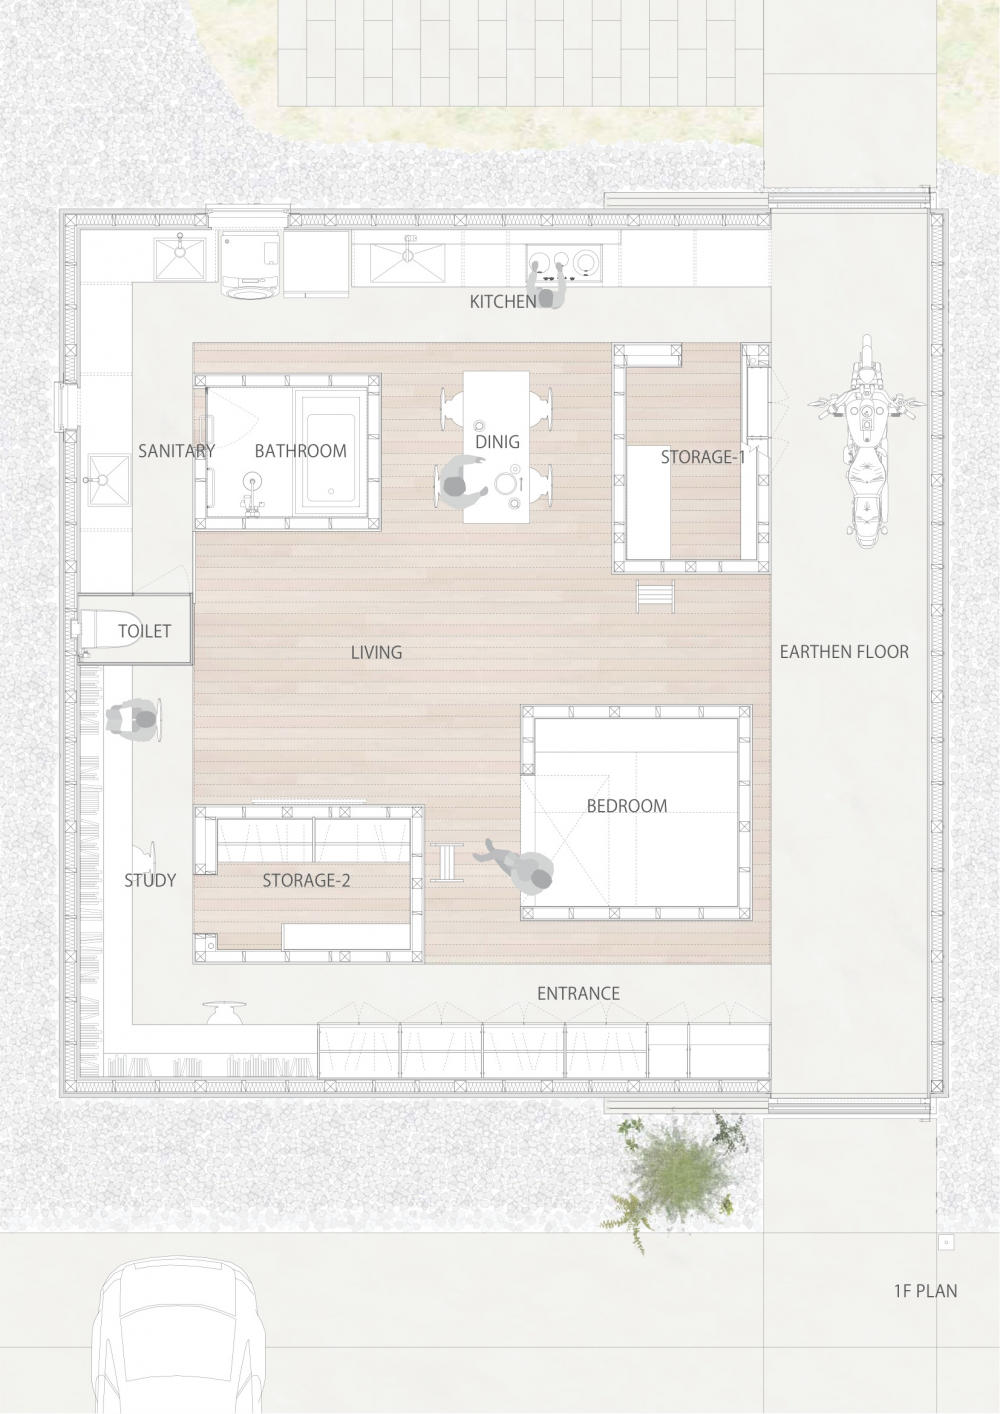 ese house floorplan   Interior Design Ideas  ese house floorplan